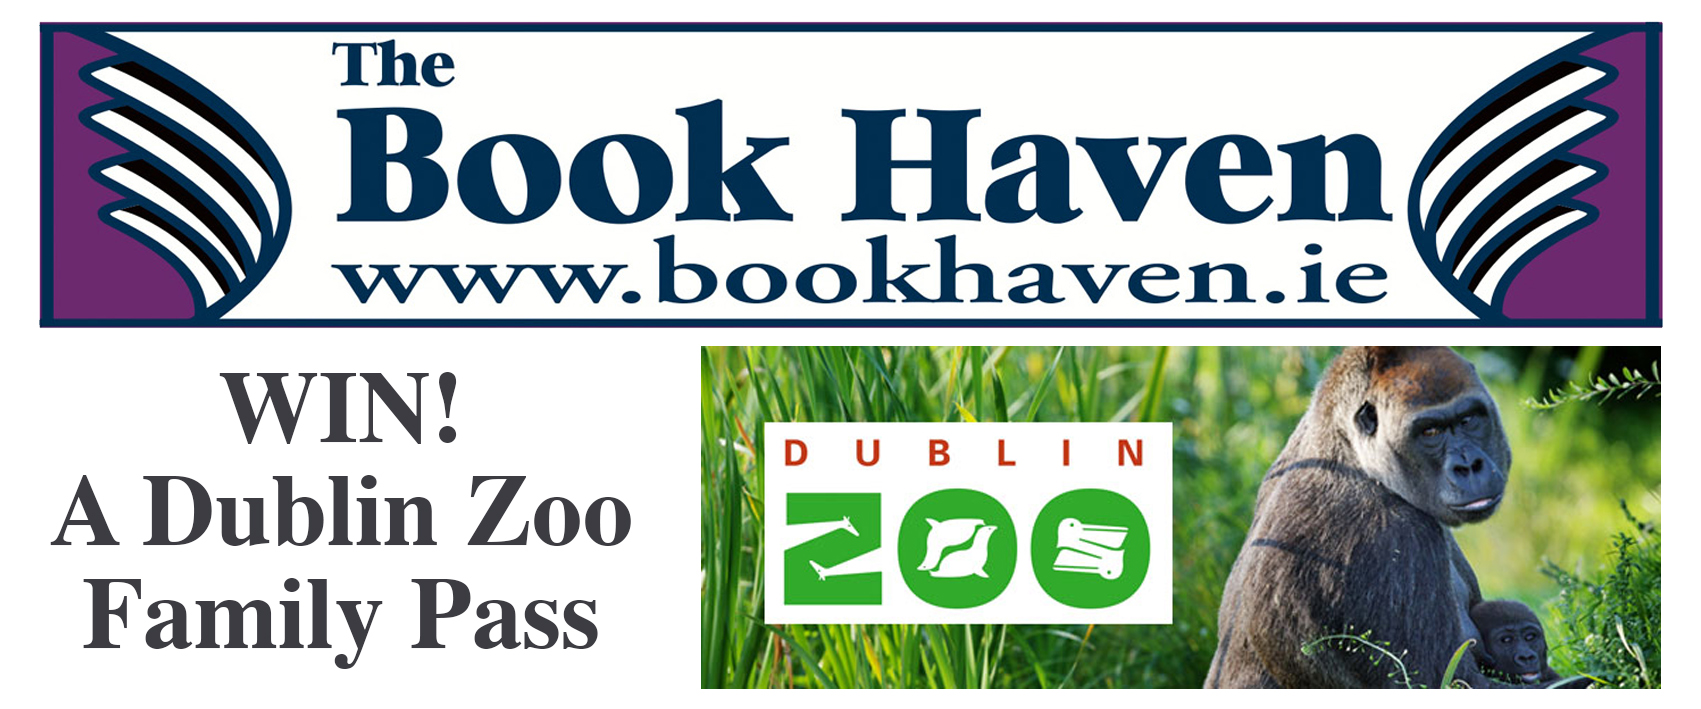 Win a Family annual pass to Dublin Zoo with the Book Haven